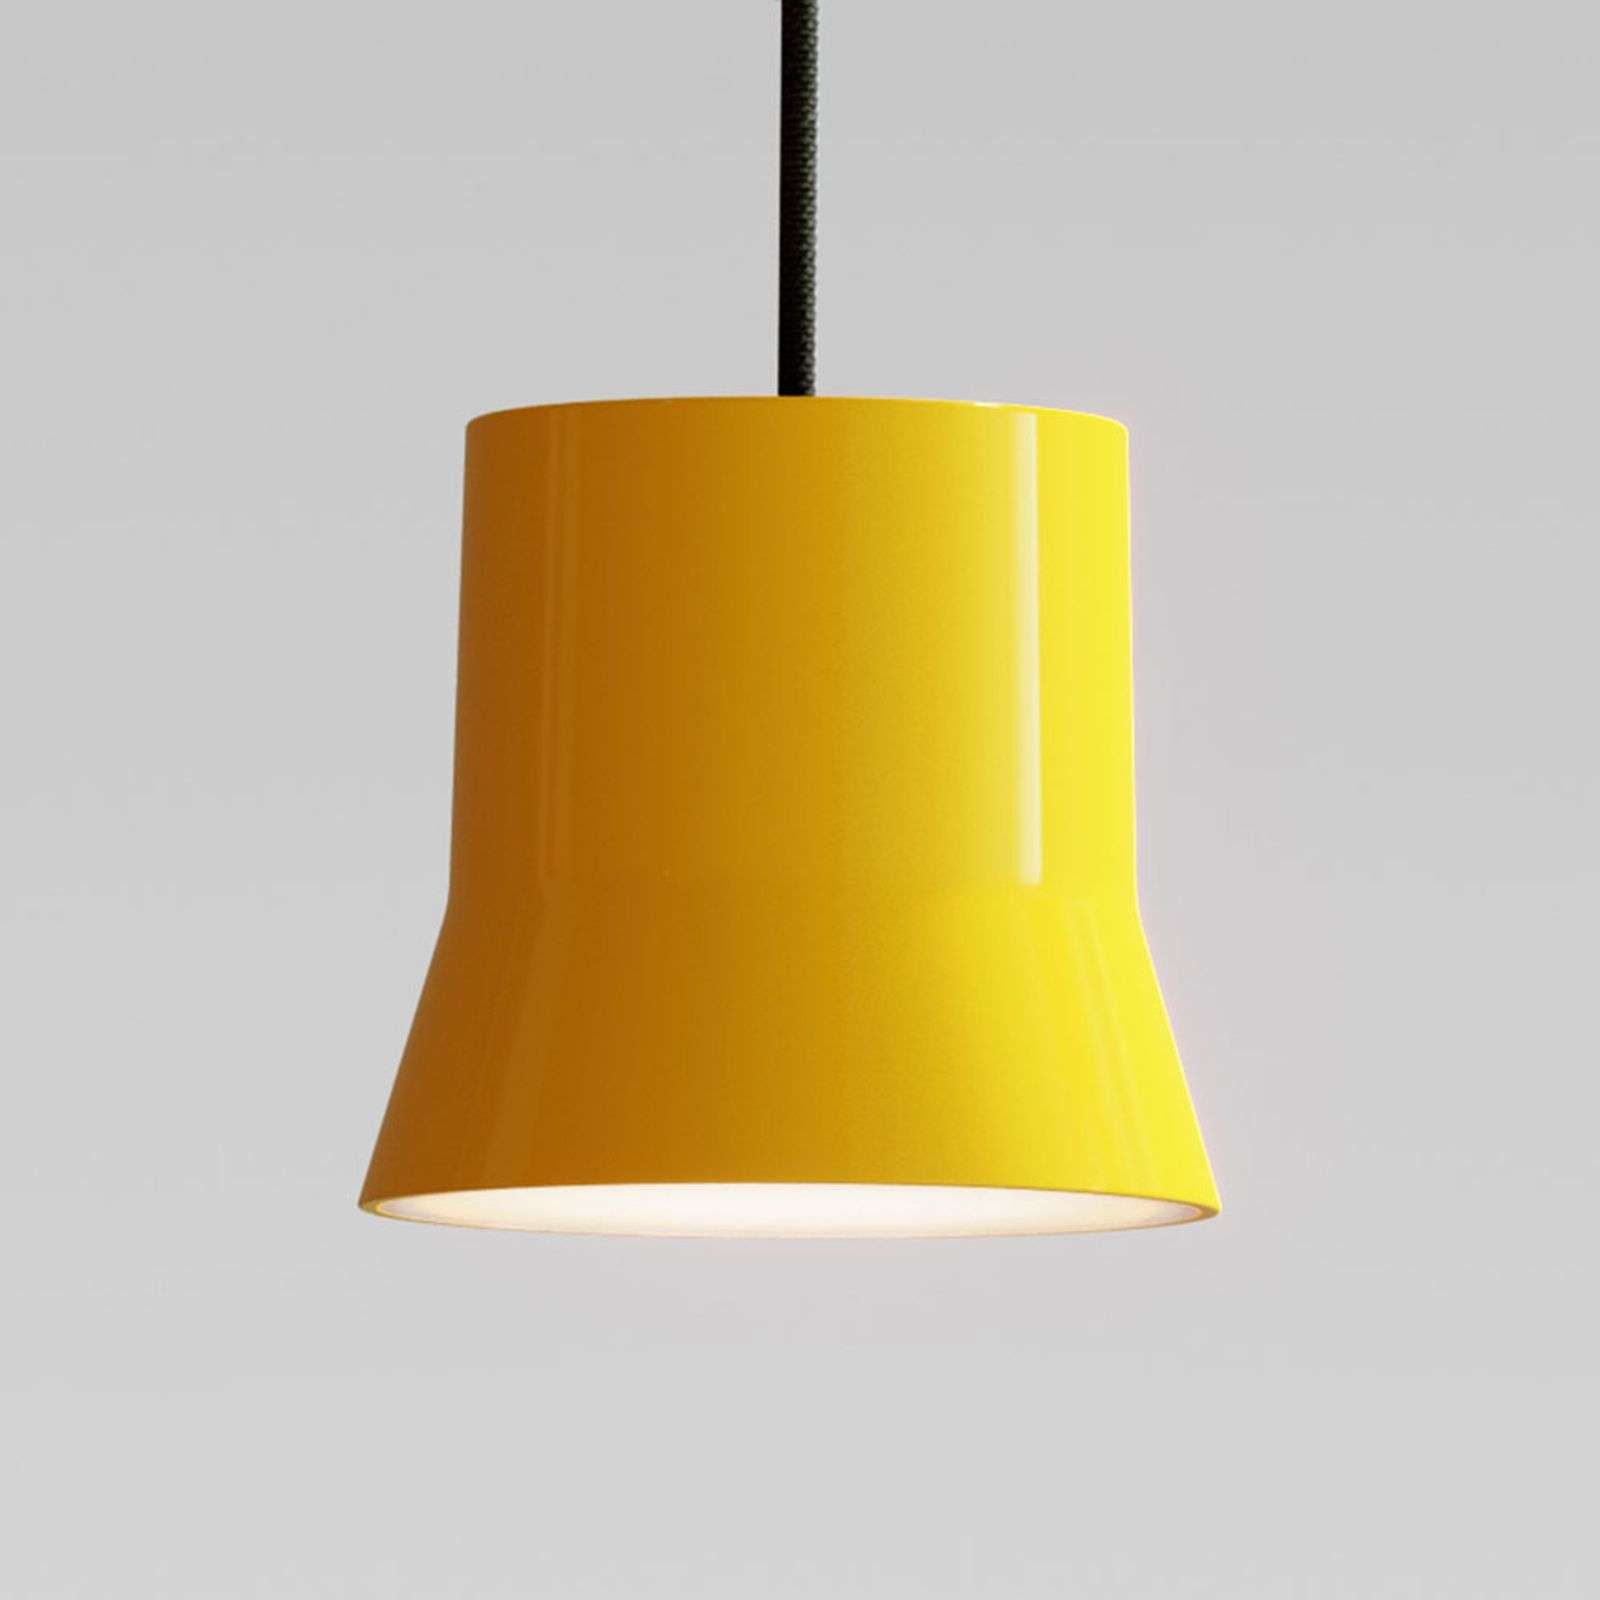 Artemide GIO.light lámpara colgante LED, amarilla